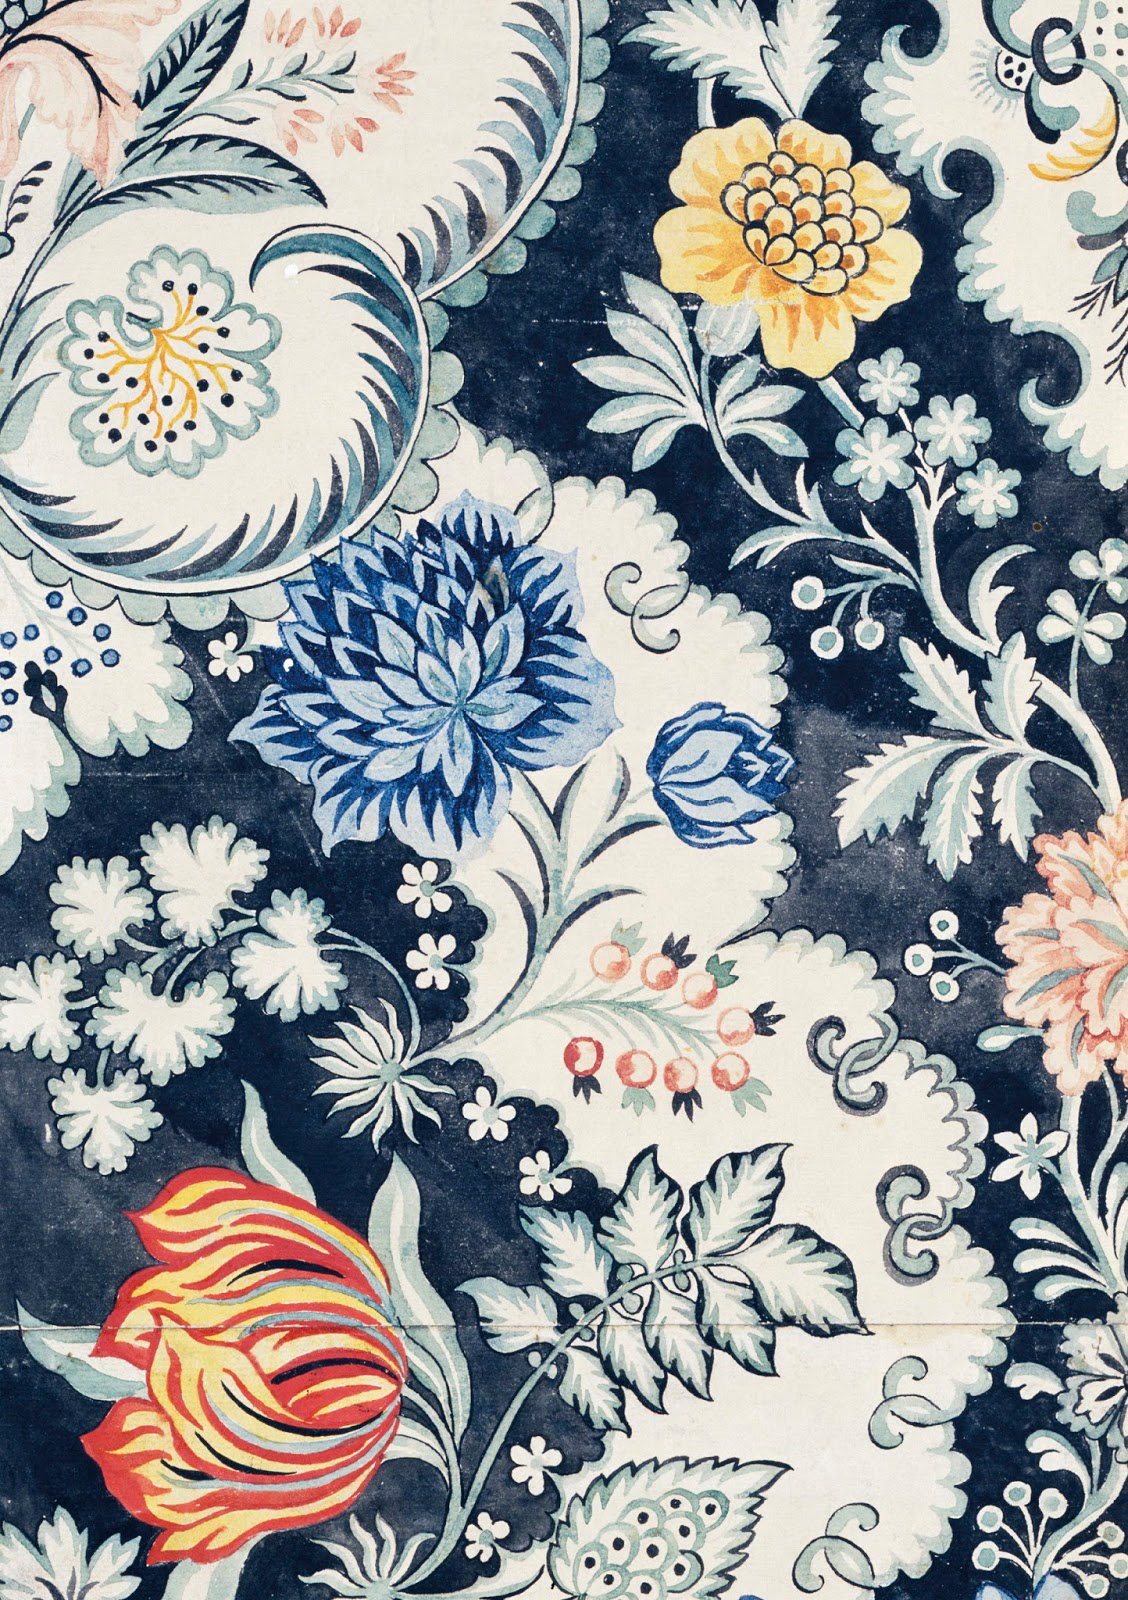 Designs by Anna Maria Garthwaite, a highly successful freelance textile designer active in the silk-producing Spitalfields parish of London.